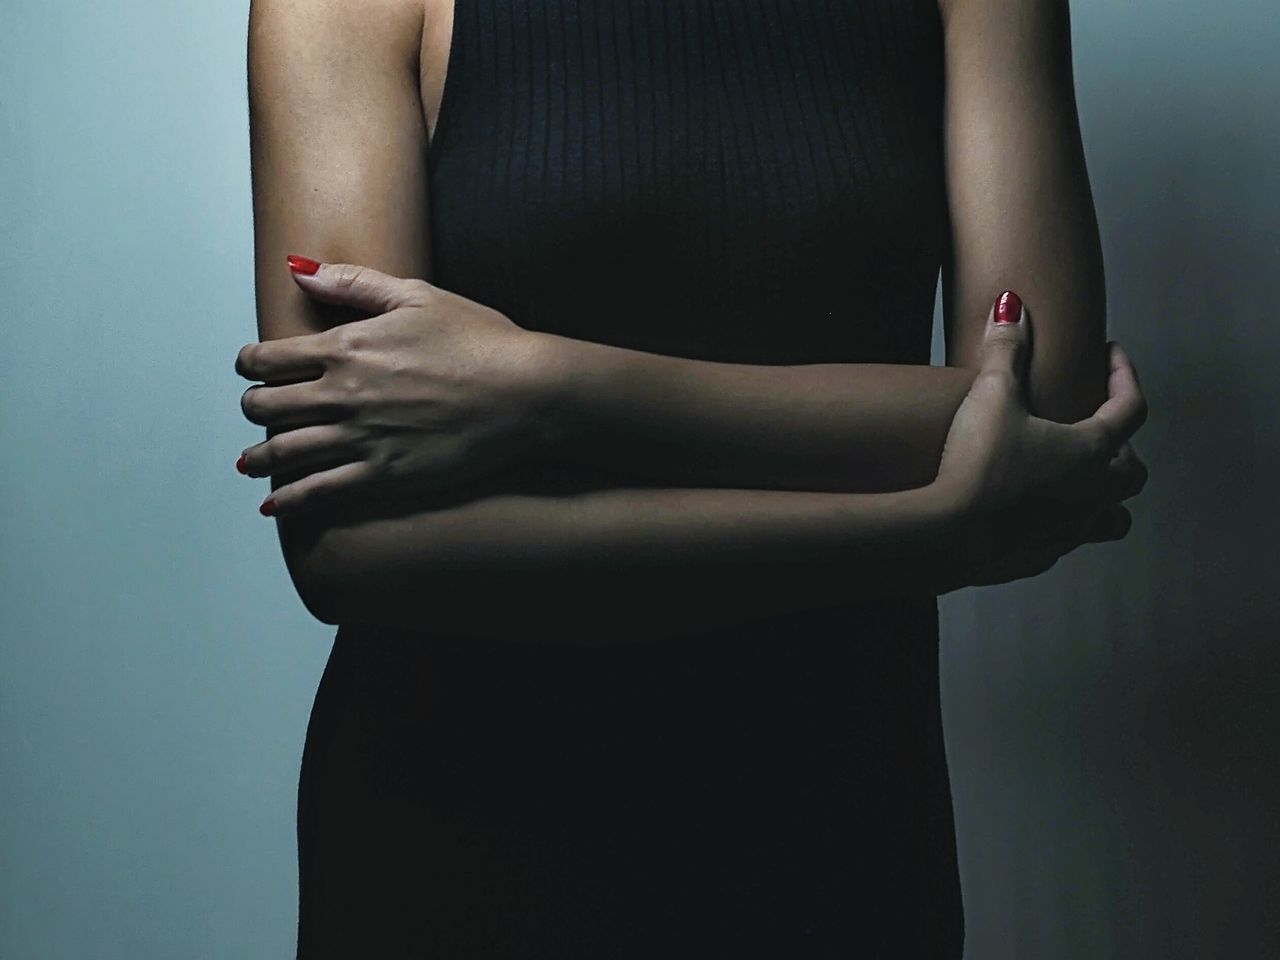 The Long Arm Of Coincidence People Photography Arm Arms Woman Folding Arm Folding Minimalism Minimalobsession Minimalist